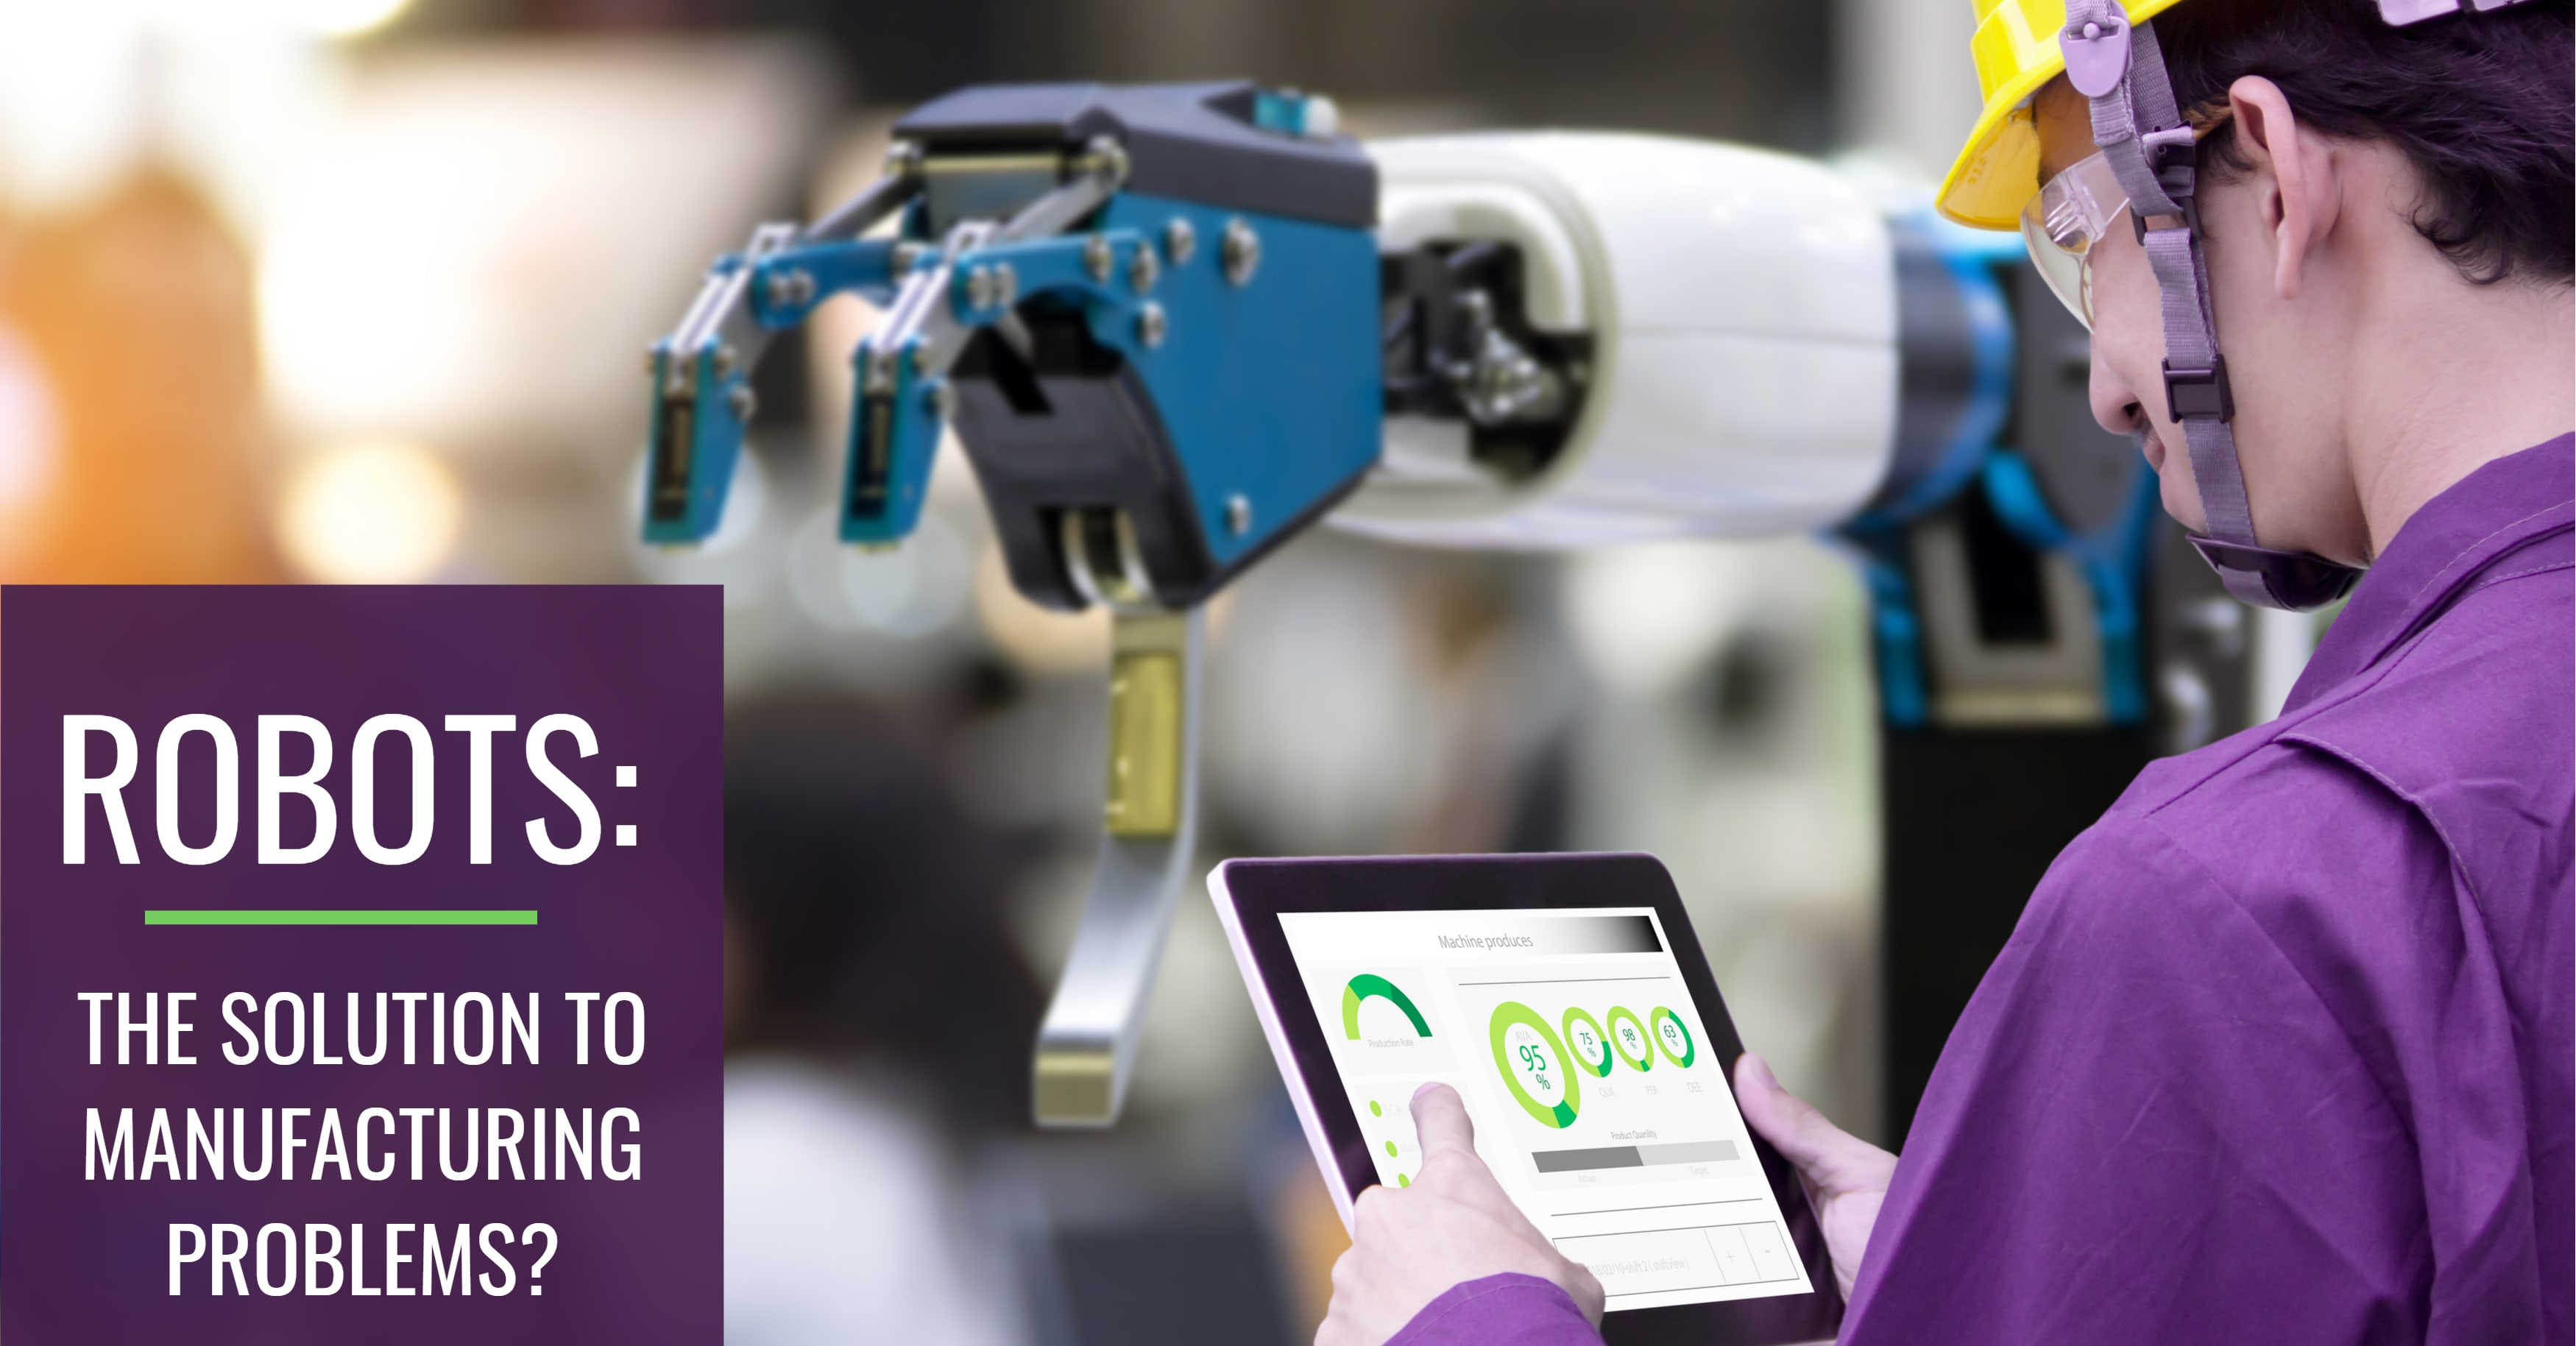 Are Robots the Solution to Manufacturing Problems?